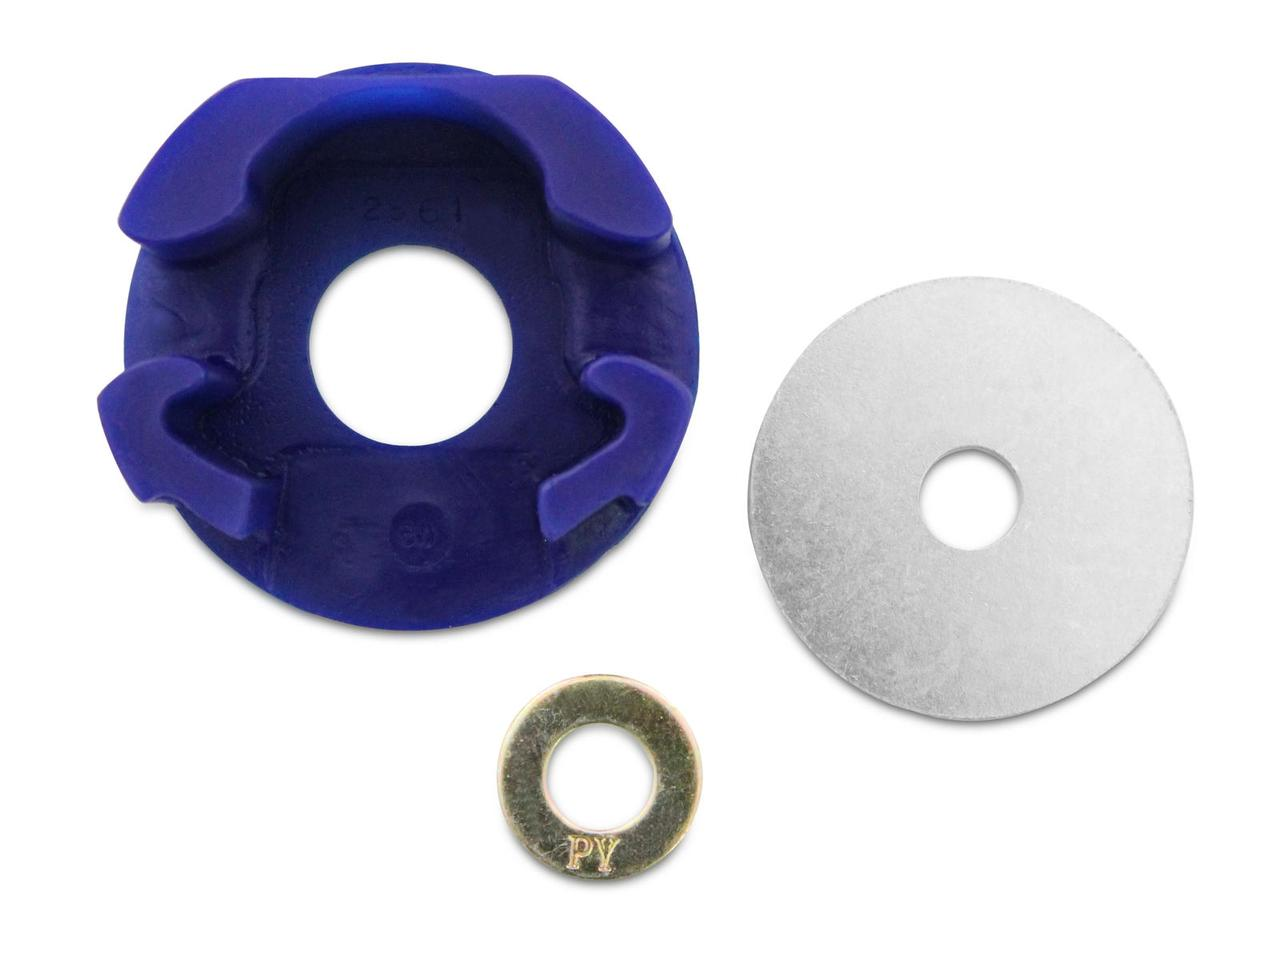 Audi A3 Torque Arm Lower Insert Bush Kit: Standard Replacement - Up to Mid-2008 Models